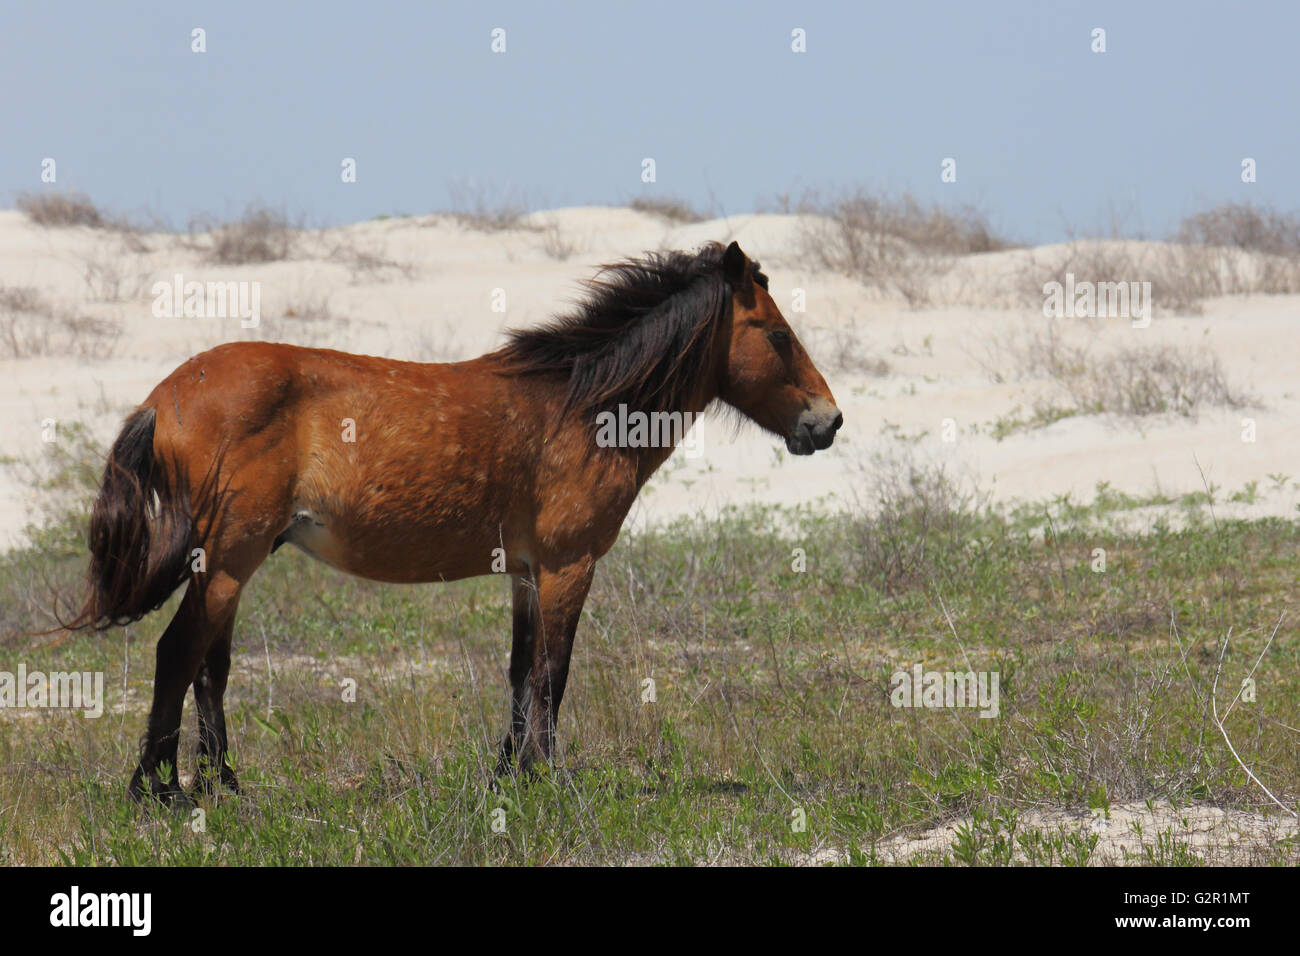 Wild mustang on Shackleford Banks standing between the dunes - Stock Image